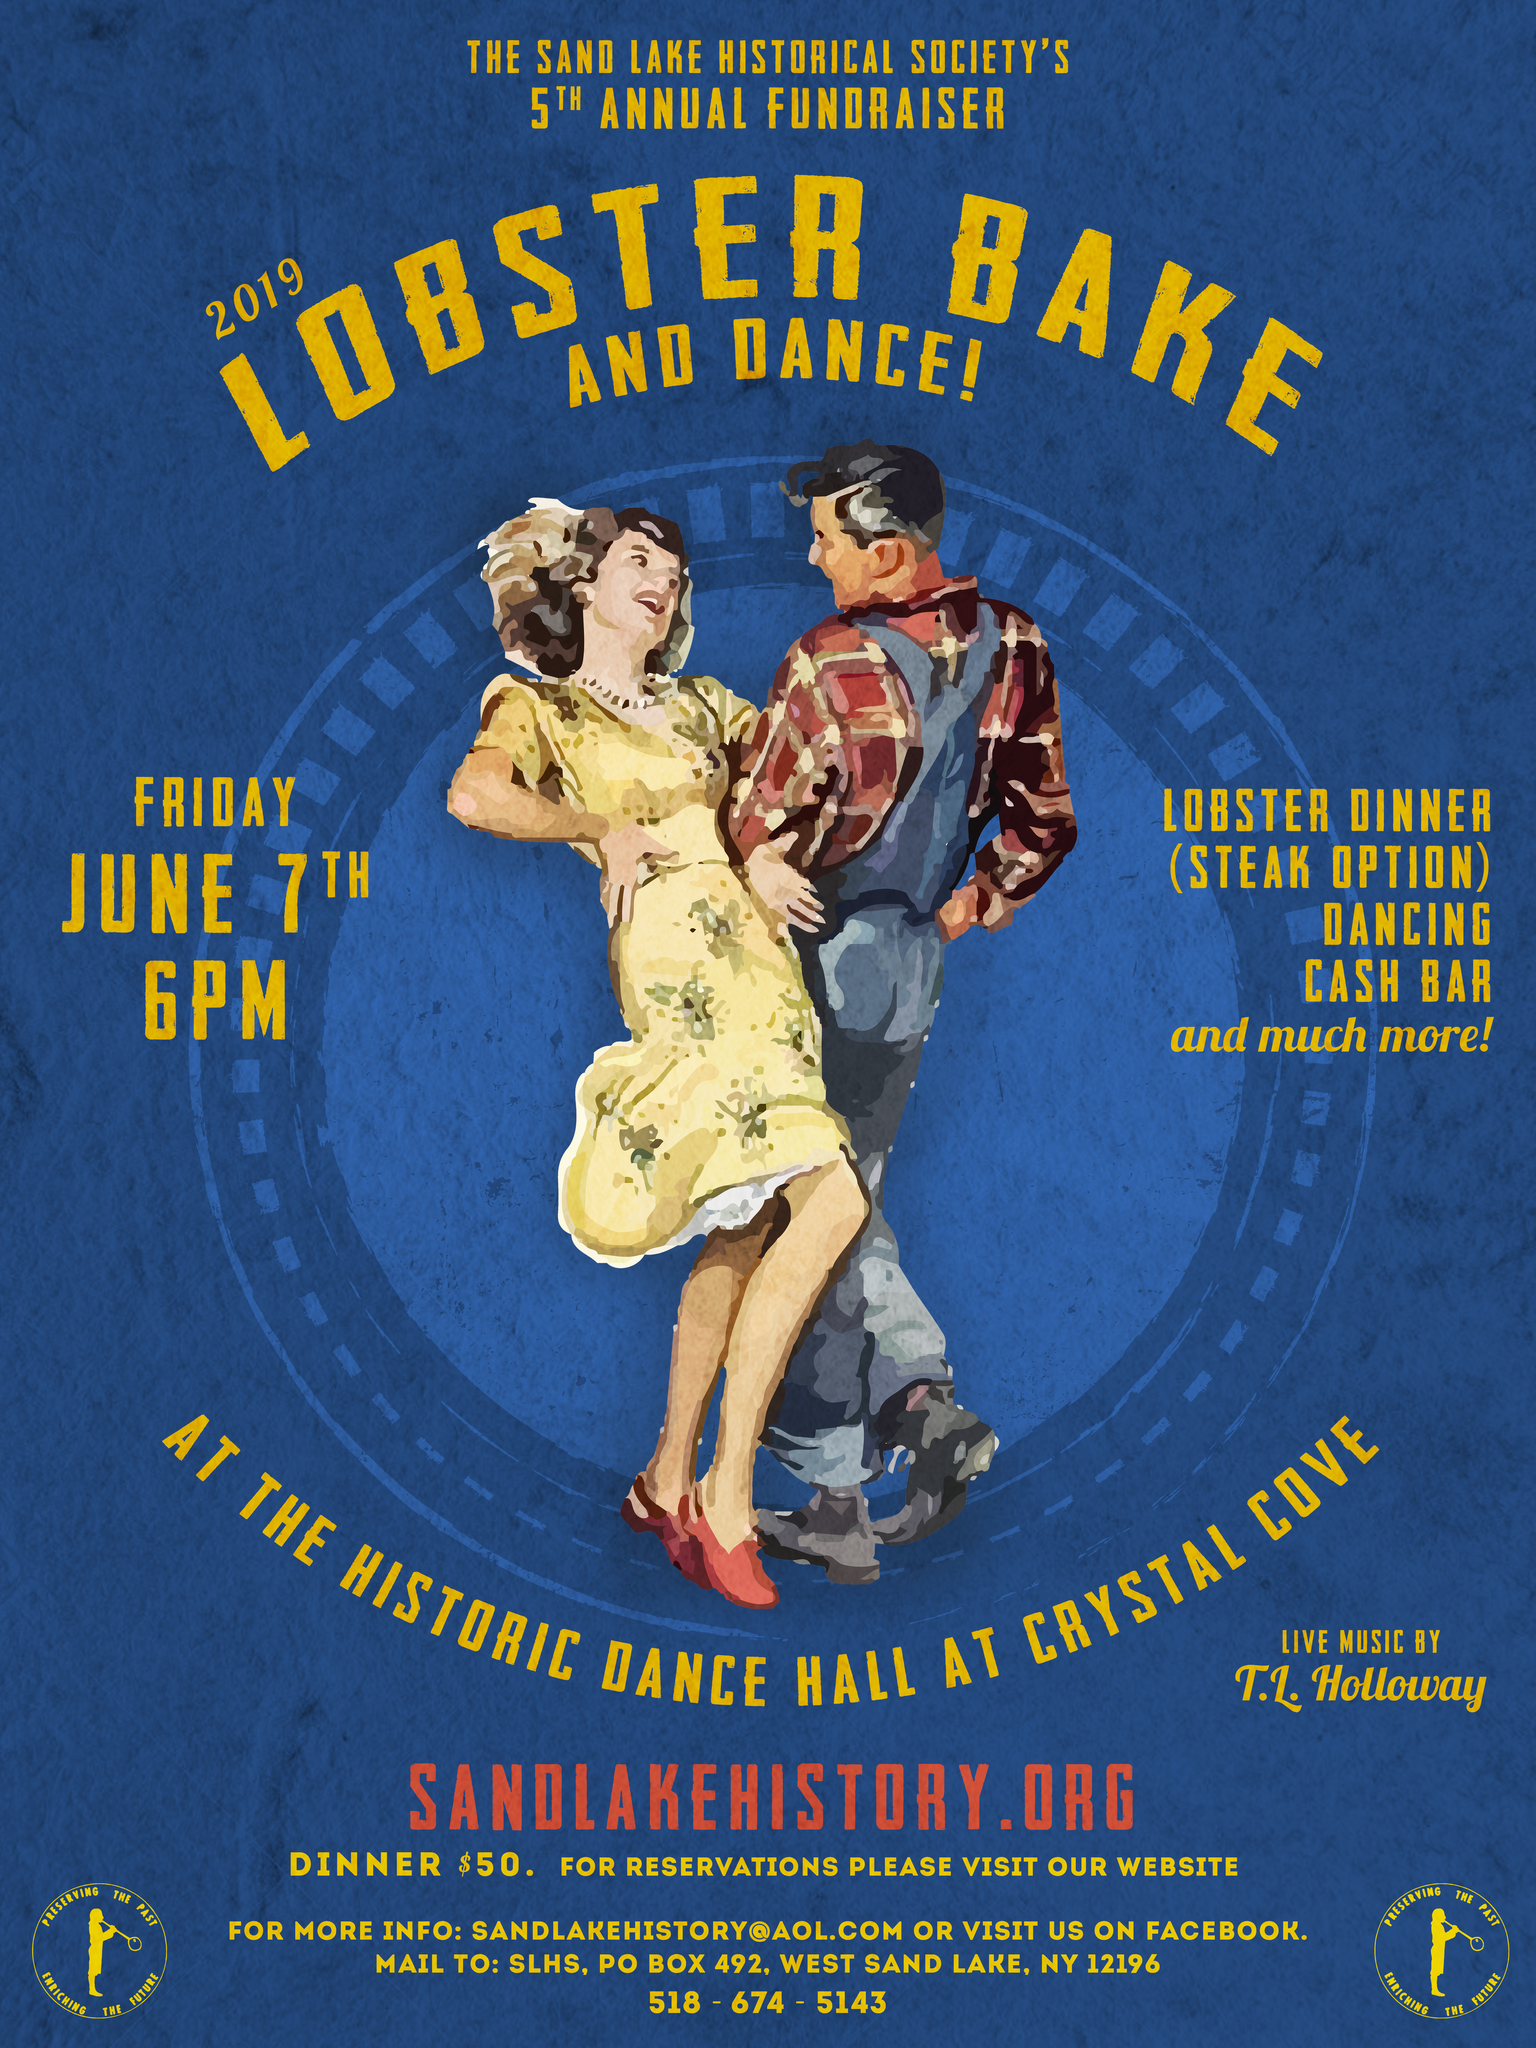 2019 lobster bake and dance poster